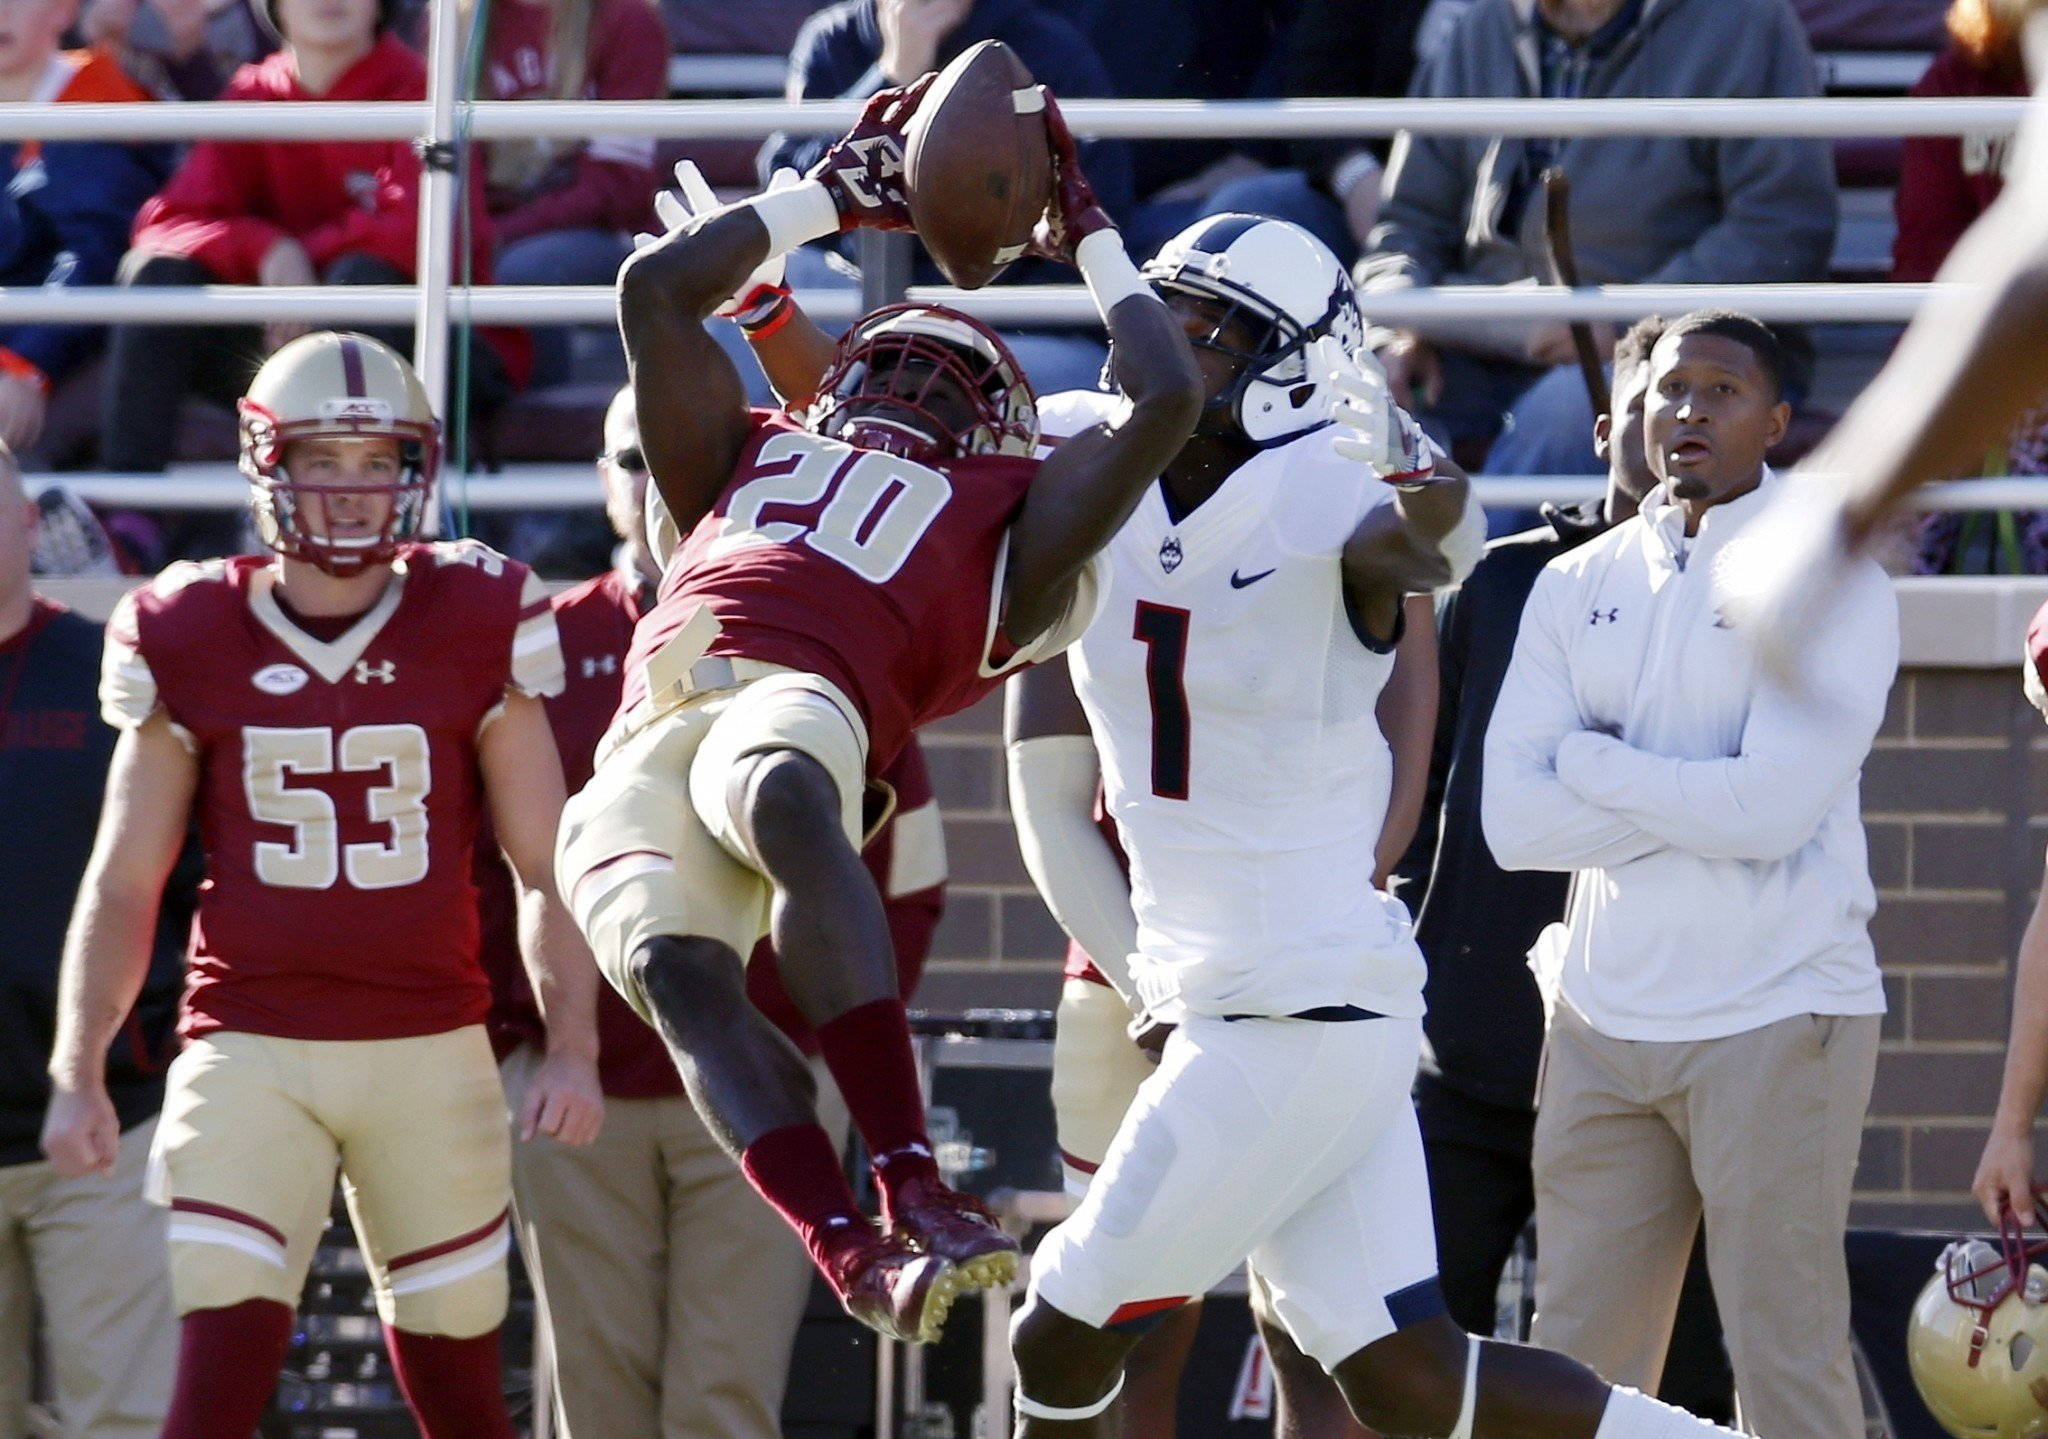 Boston College beat UConn in 2016. The Eagles declined to play that game at Fenway Park. (AP)